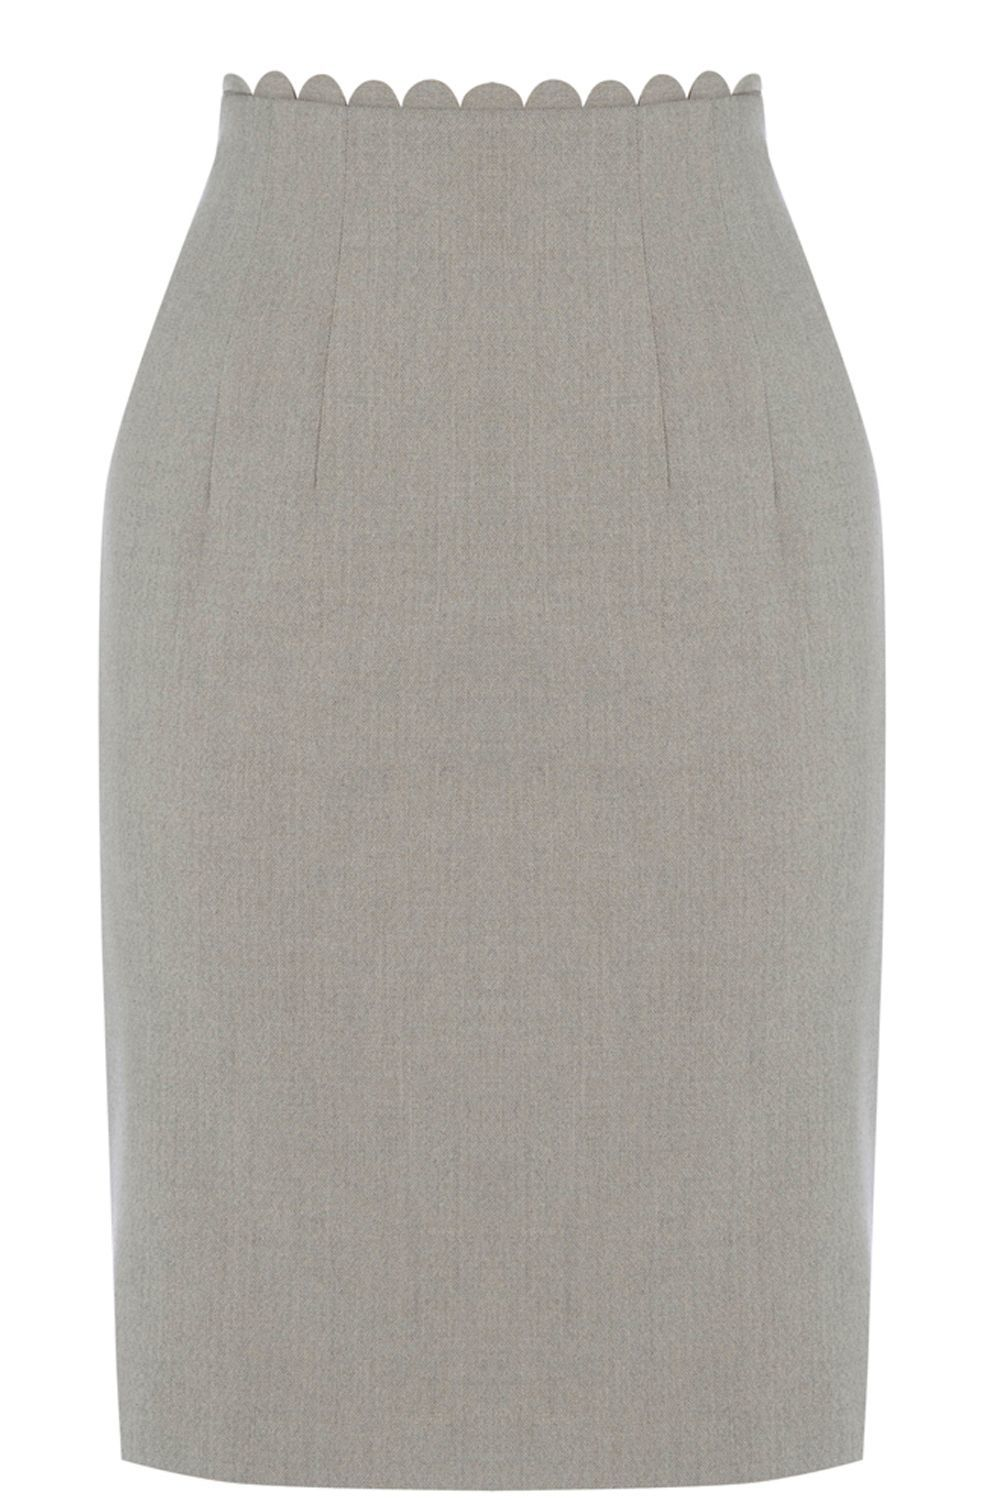 Clara Workwear Skirt, Grey - pattern: plain; style: pencil; fit: tailored/fitted; waist: mid/regular rise; predominant colour: light grey; occasions: work; length: just above the knee; fibres: polyester/polyamide - stretch; pattern type: fabric; texture group: woven light midweight; season: s/s 2016; wardrobe: basic